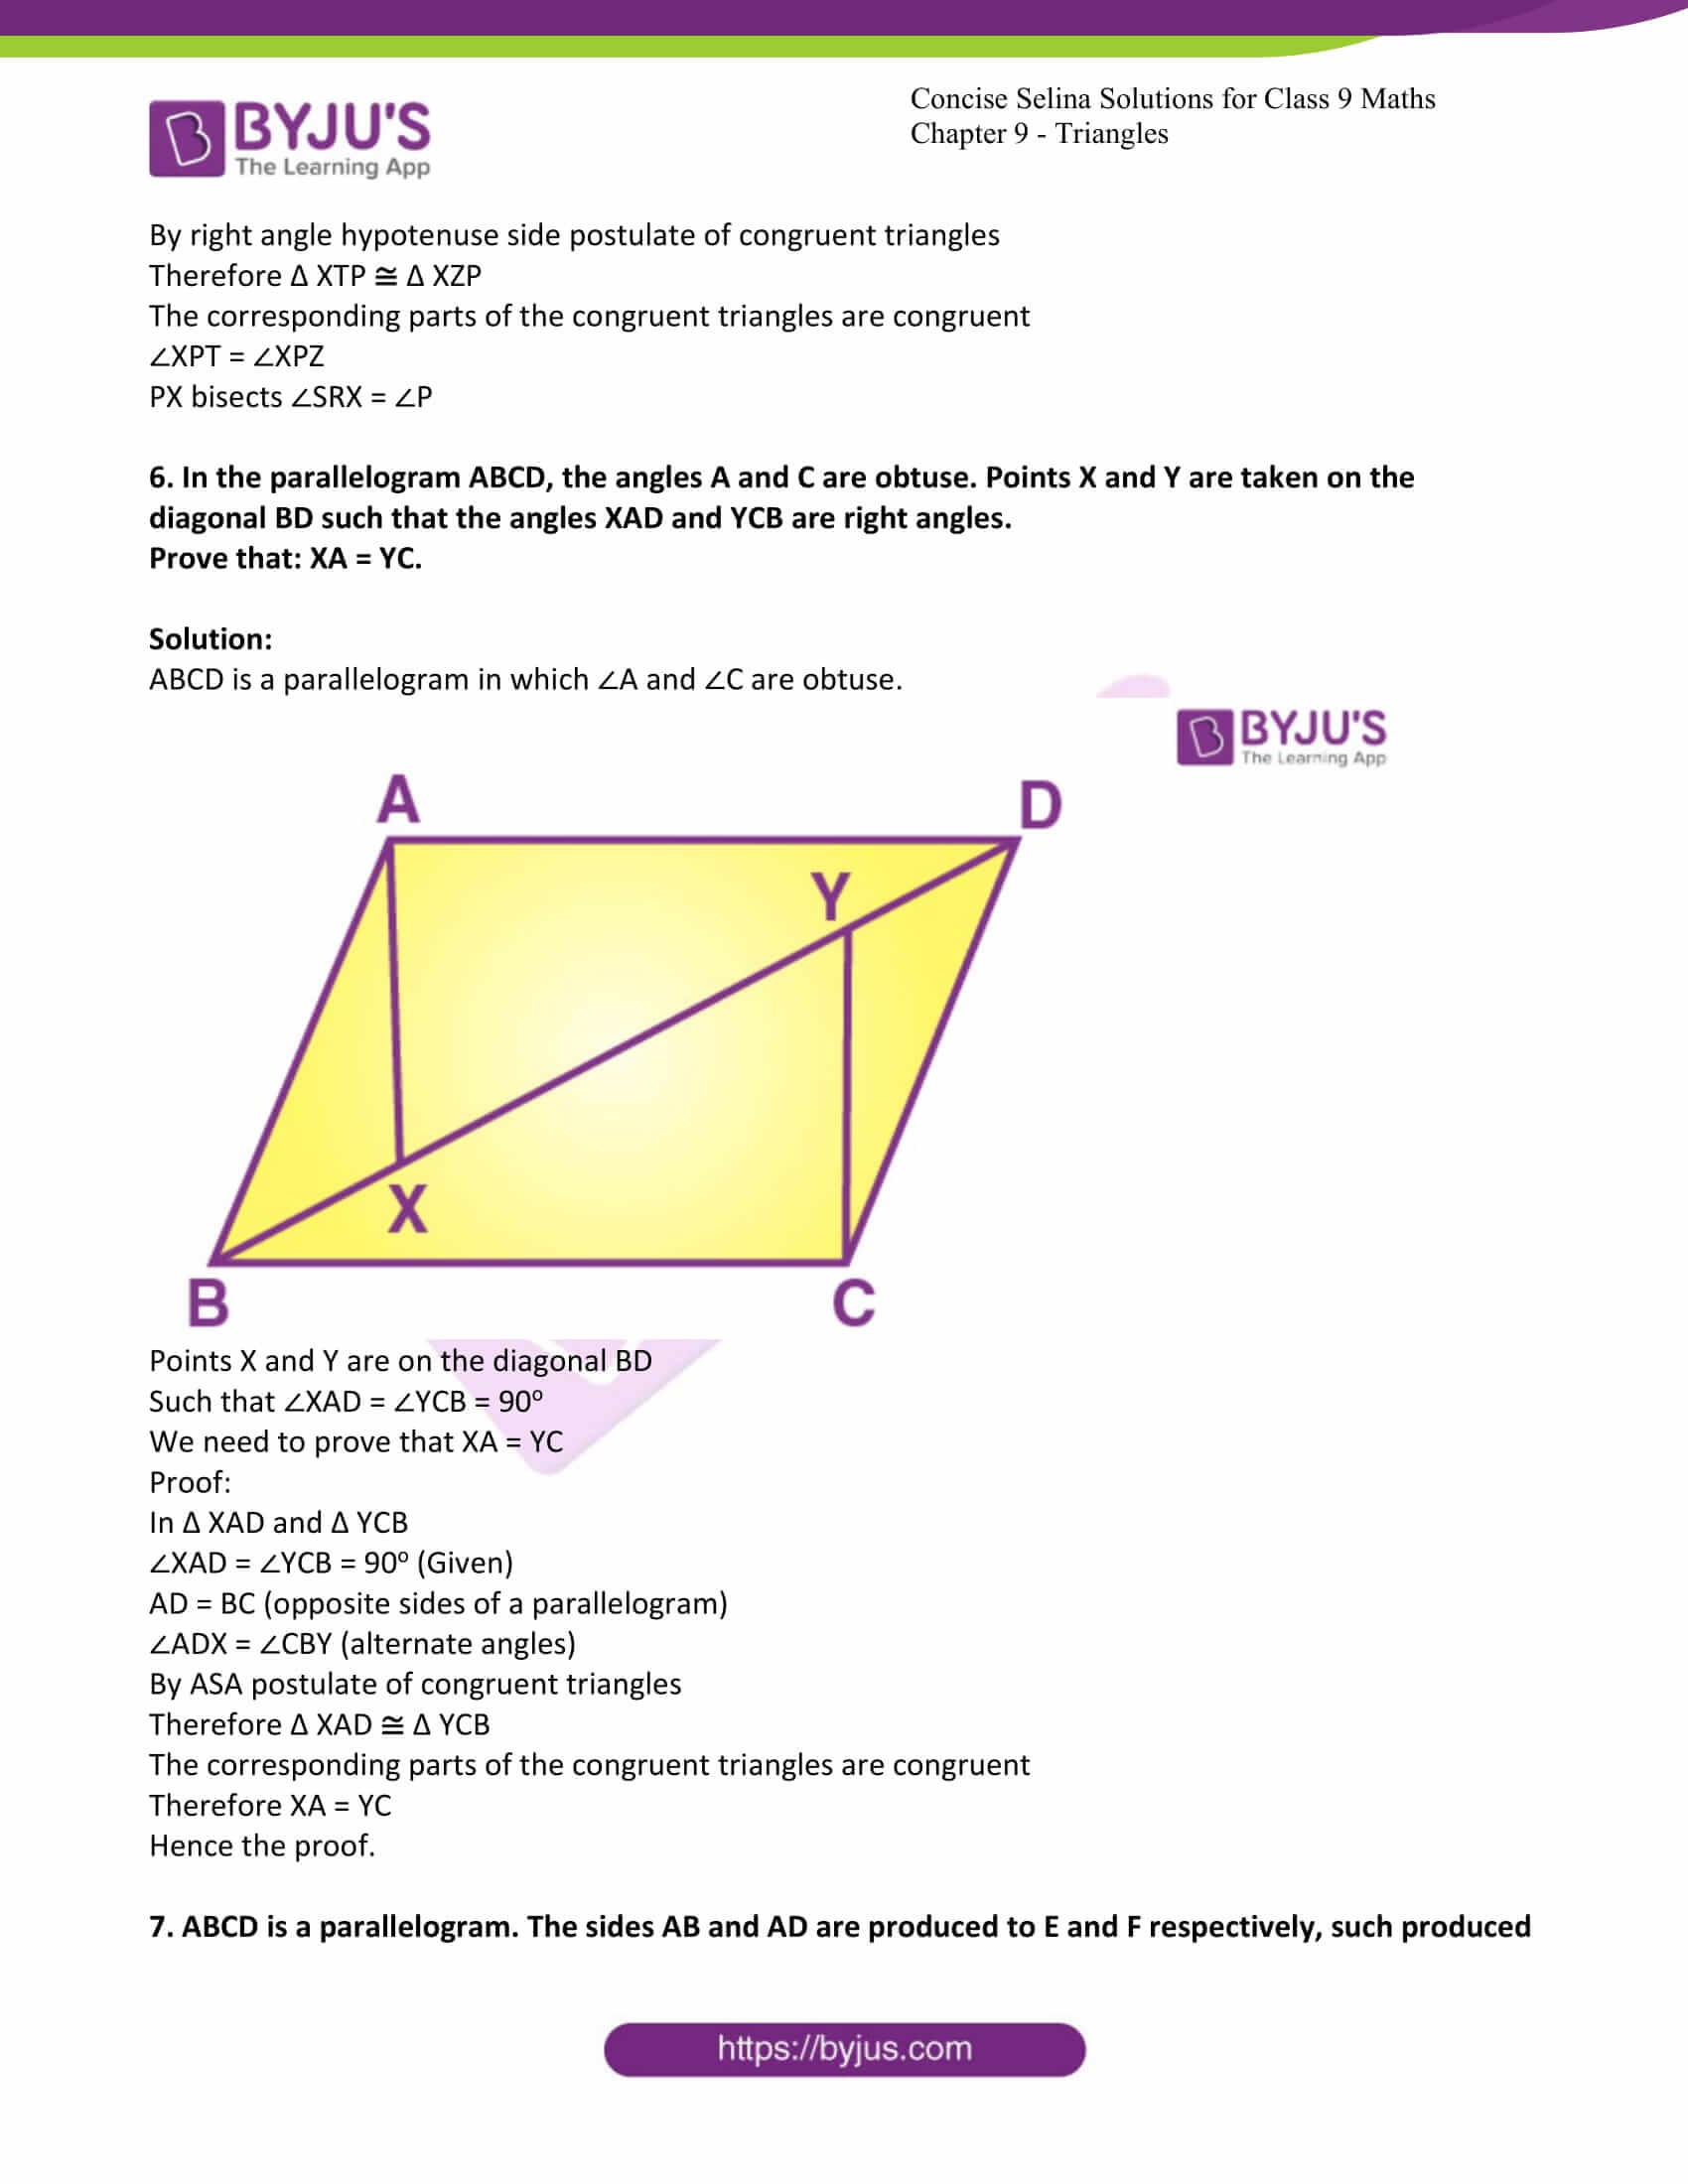 icse class 9 maths may10 selina solutions chapter 9 triangles 26